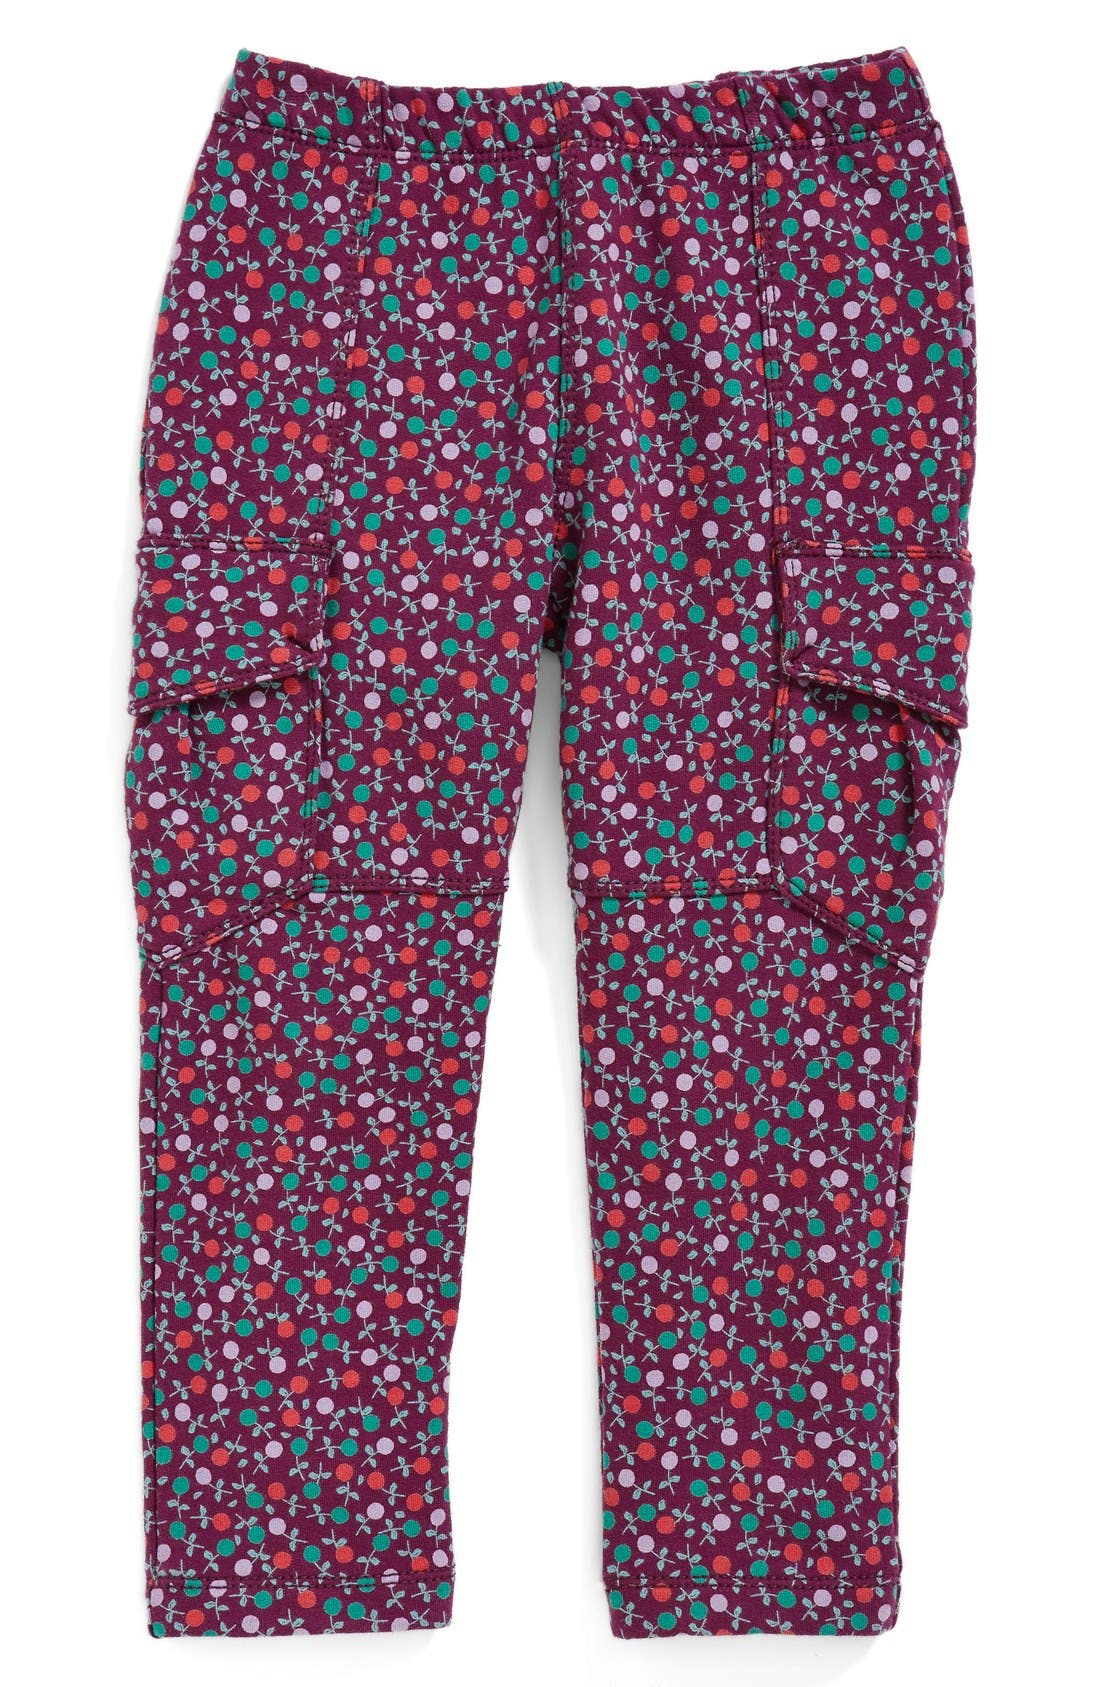 Main Image - Tea Collection 'Blumen' French Terry Cargo Pants (Baby Girls)